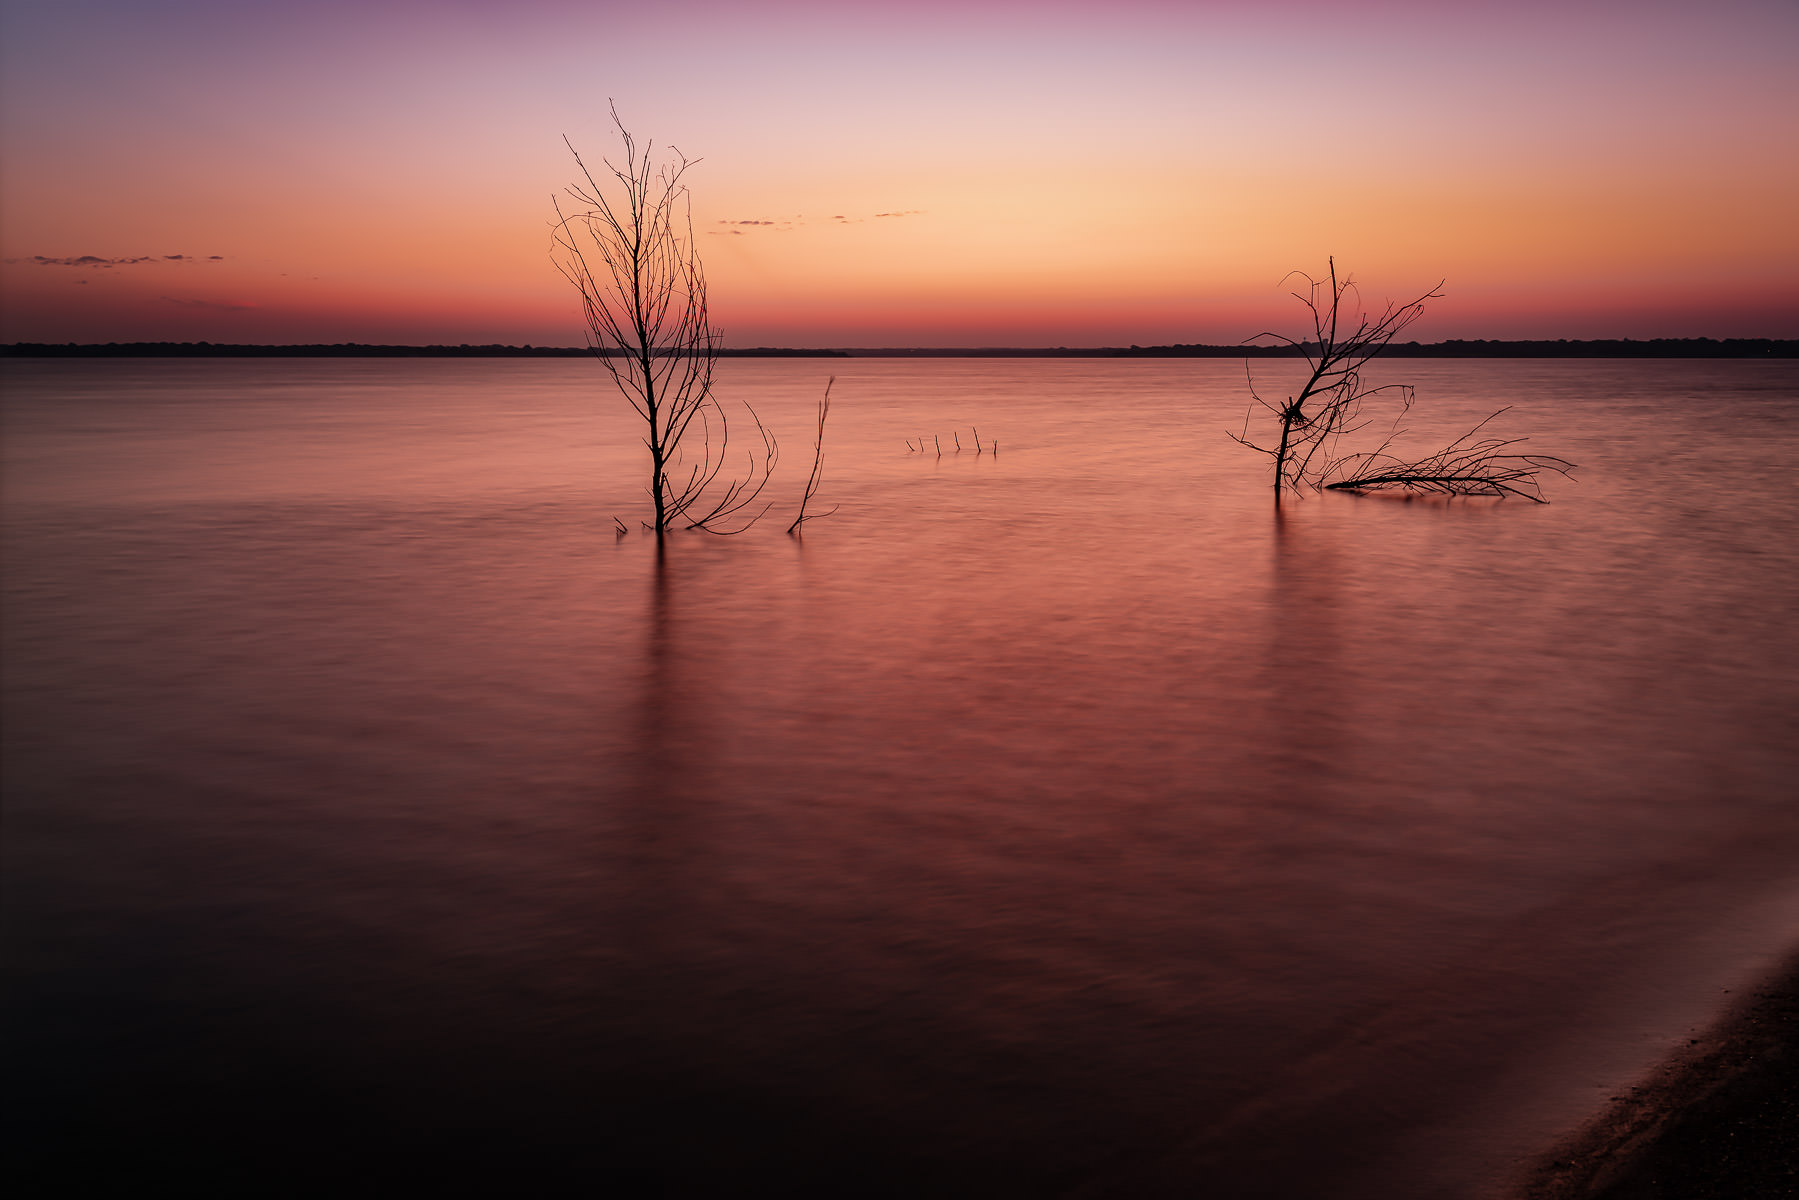 Flooded trees reach out of the waters of North Texas' Lake Lavon.